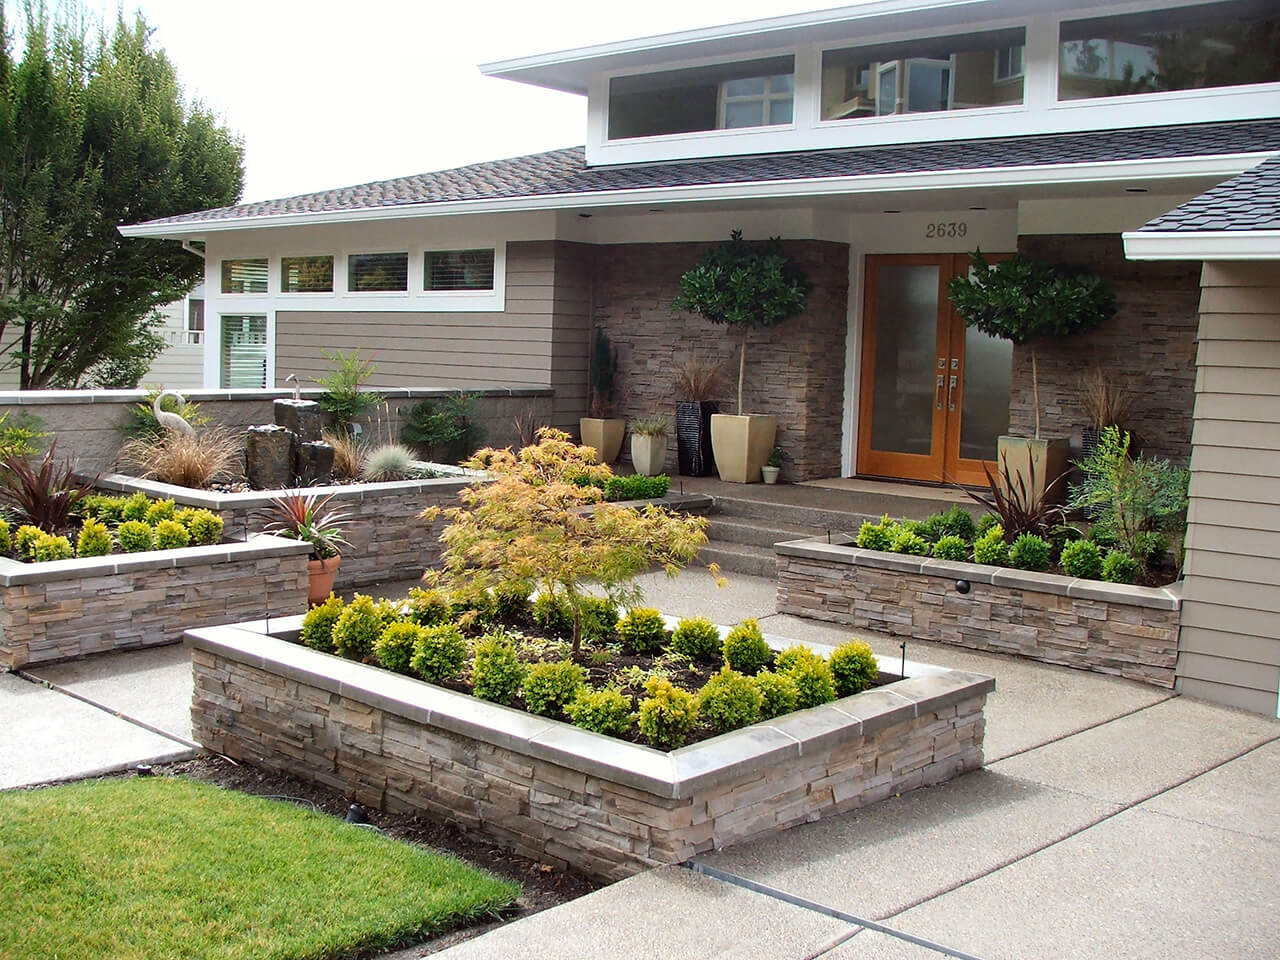 50 best front yard landscaping ideas and garden designs for Garden designs for front yards